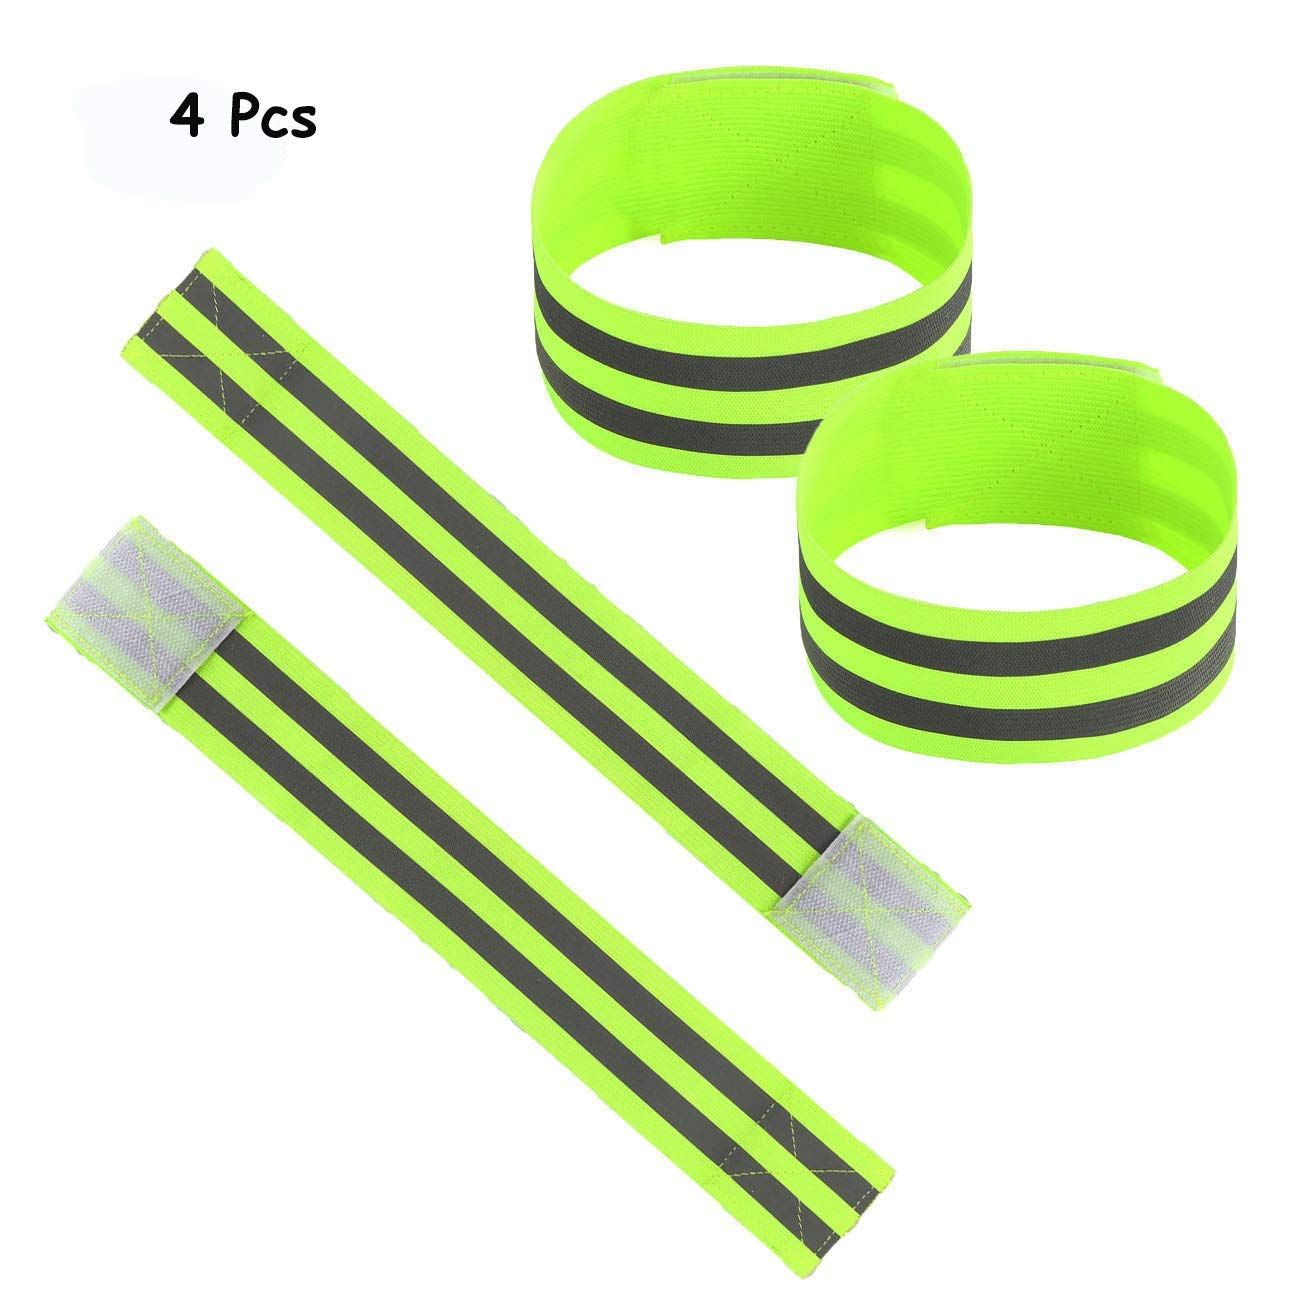 2 Pack Eurow Safety 3M Scotchlite Reflective Strips Bands With 4 LED